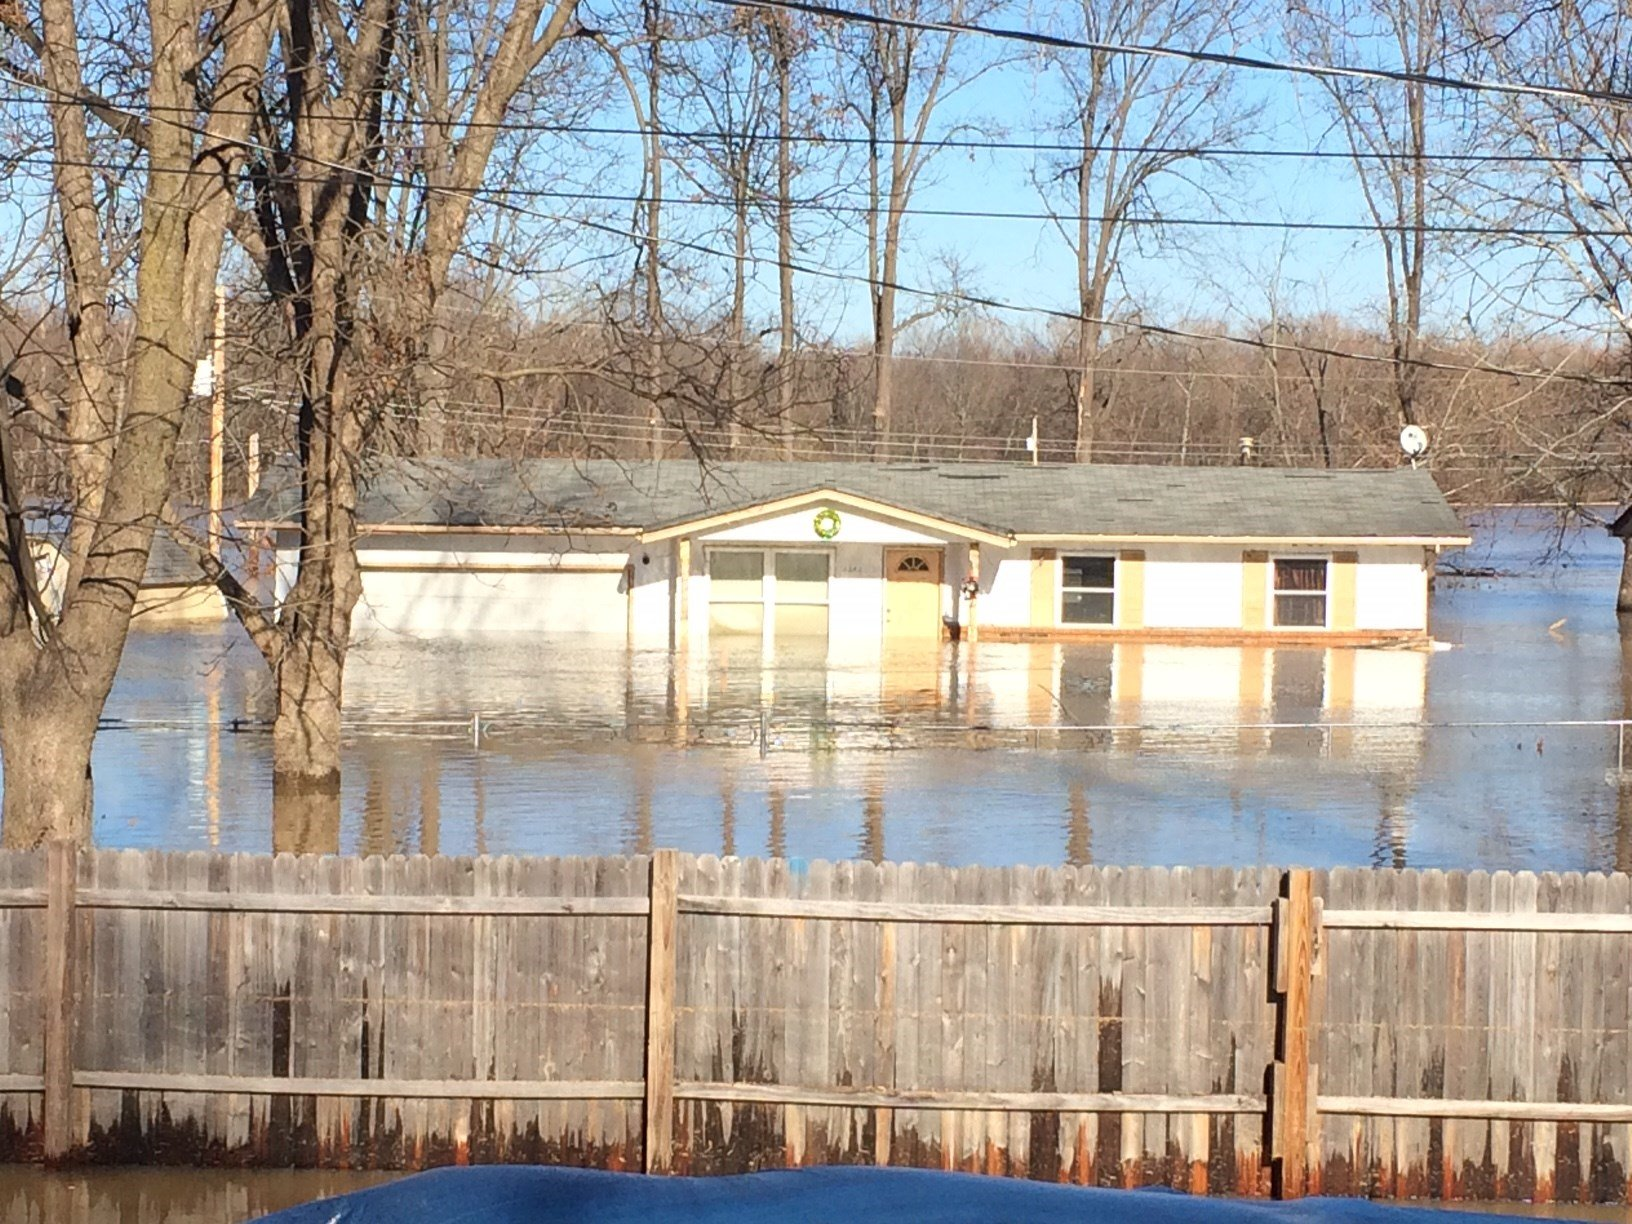 An Arnold house flooded by the Meremac River.